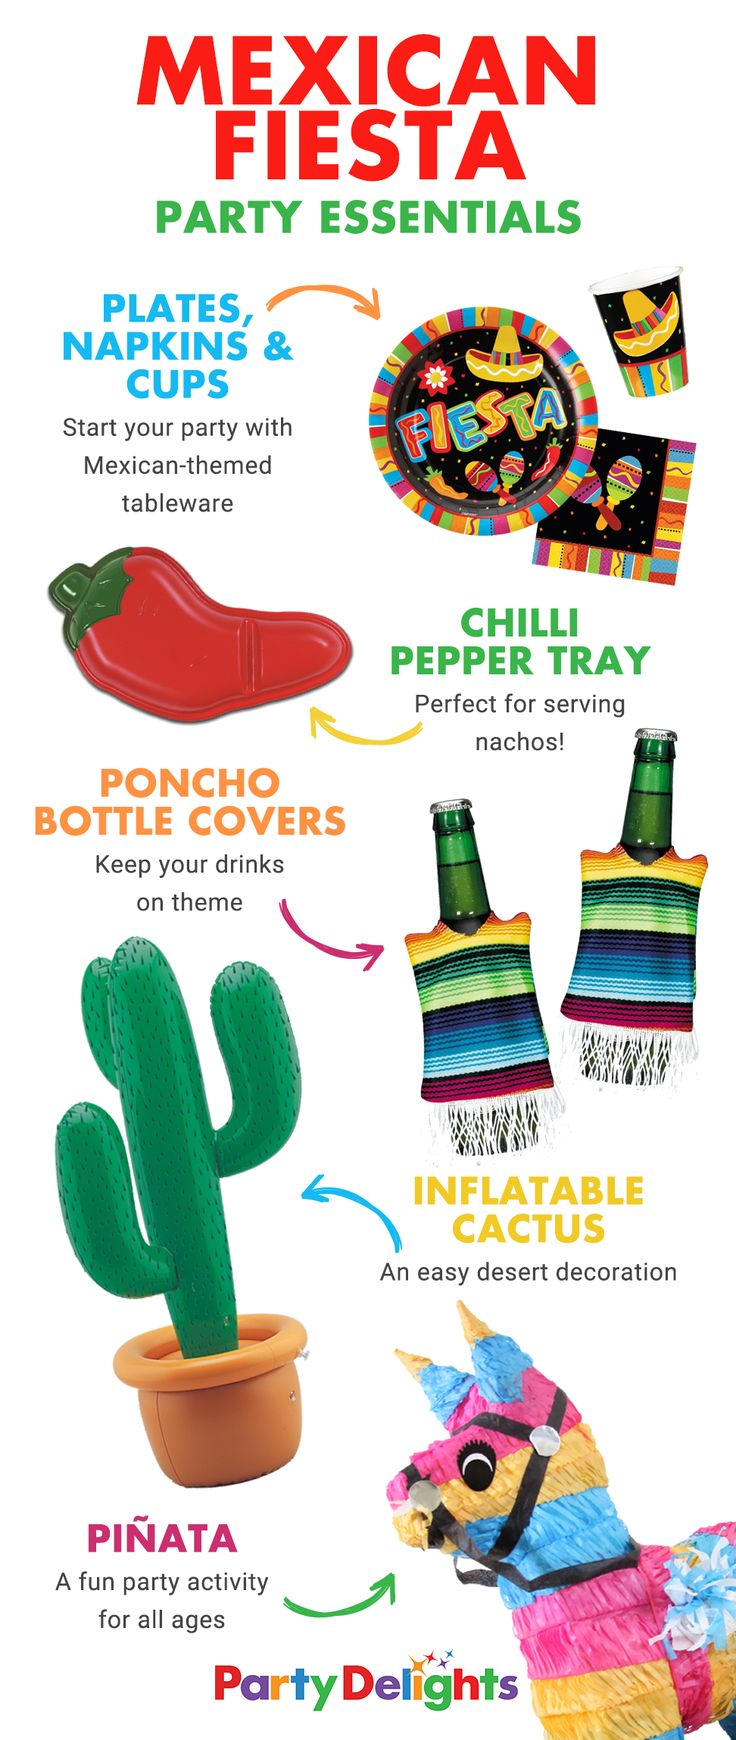 Mexican fiesta party decorating ideas hosting guide - Latest Mexican Themed Partyware Including Invitations Tableware And Decorations